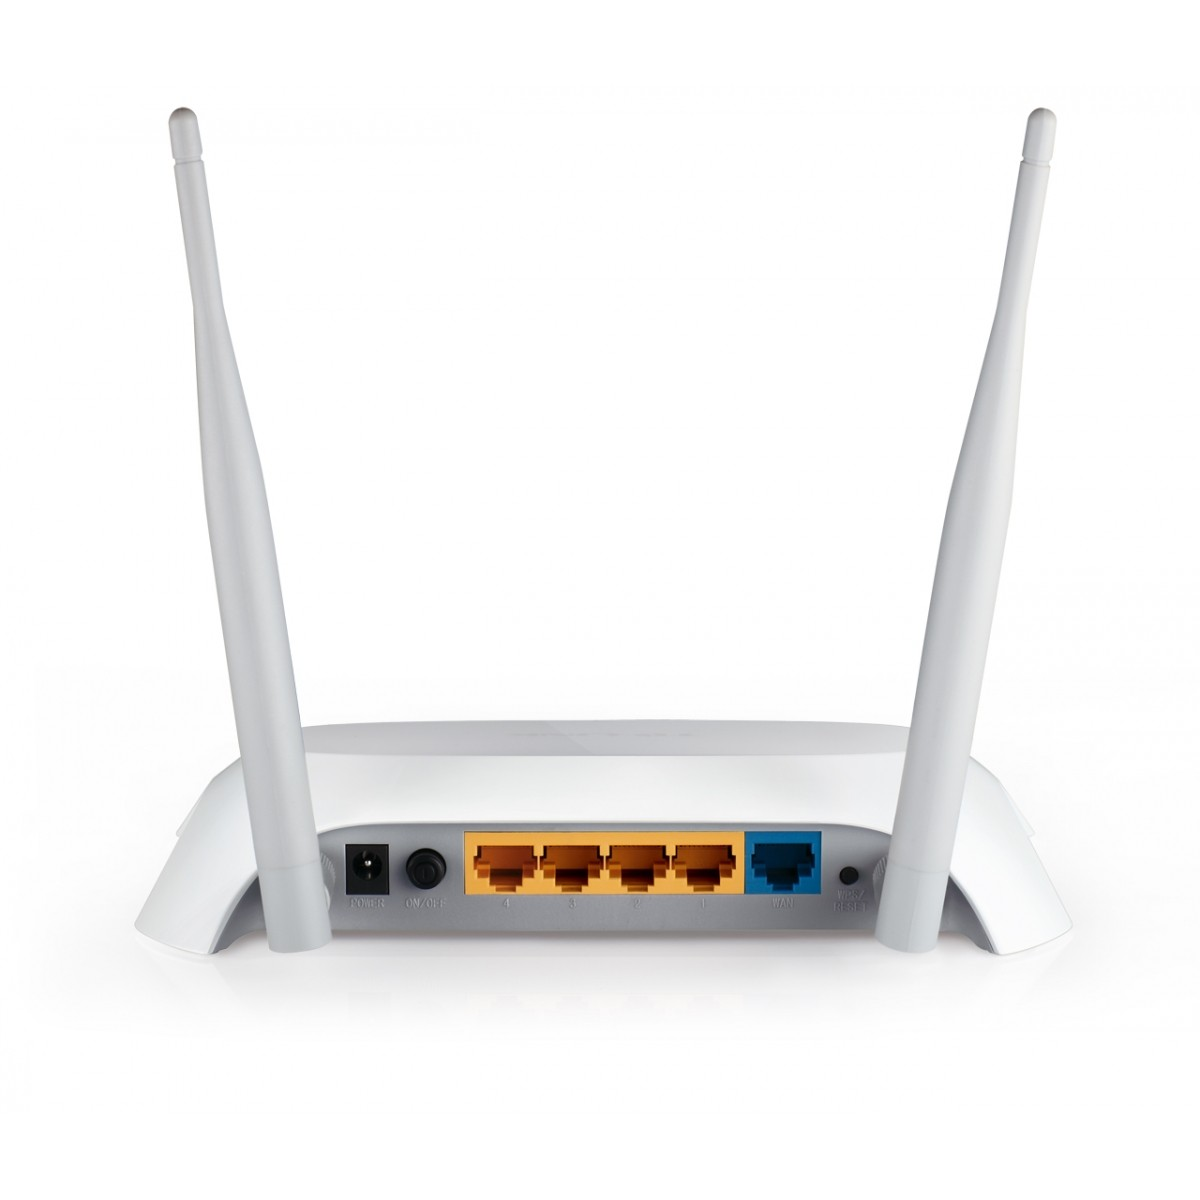 Roteador Wireless 3g/4g 300mbps Tp-link Tl-mr3420